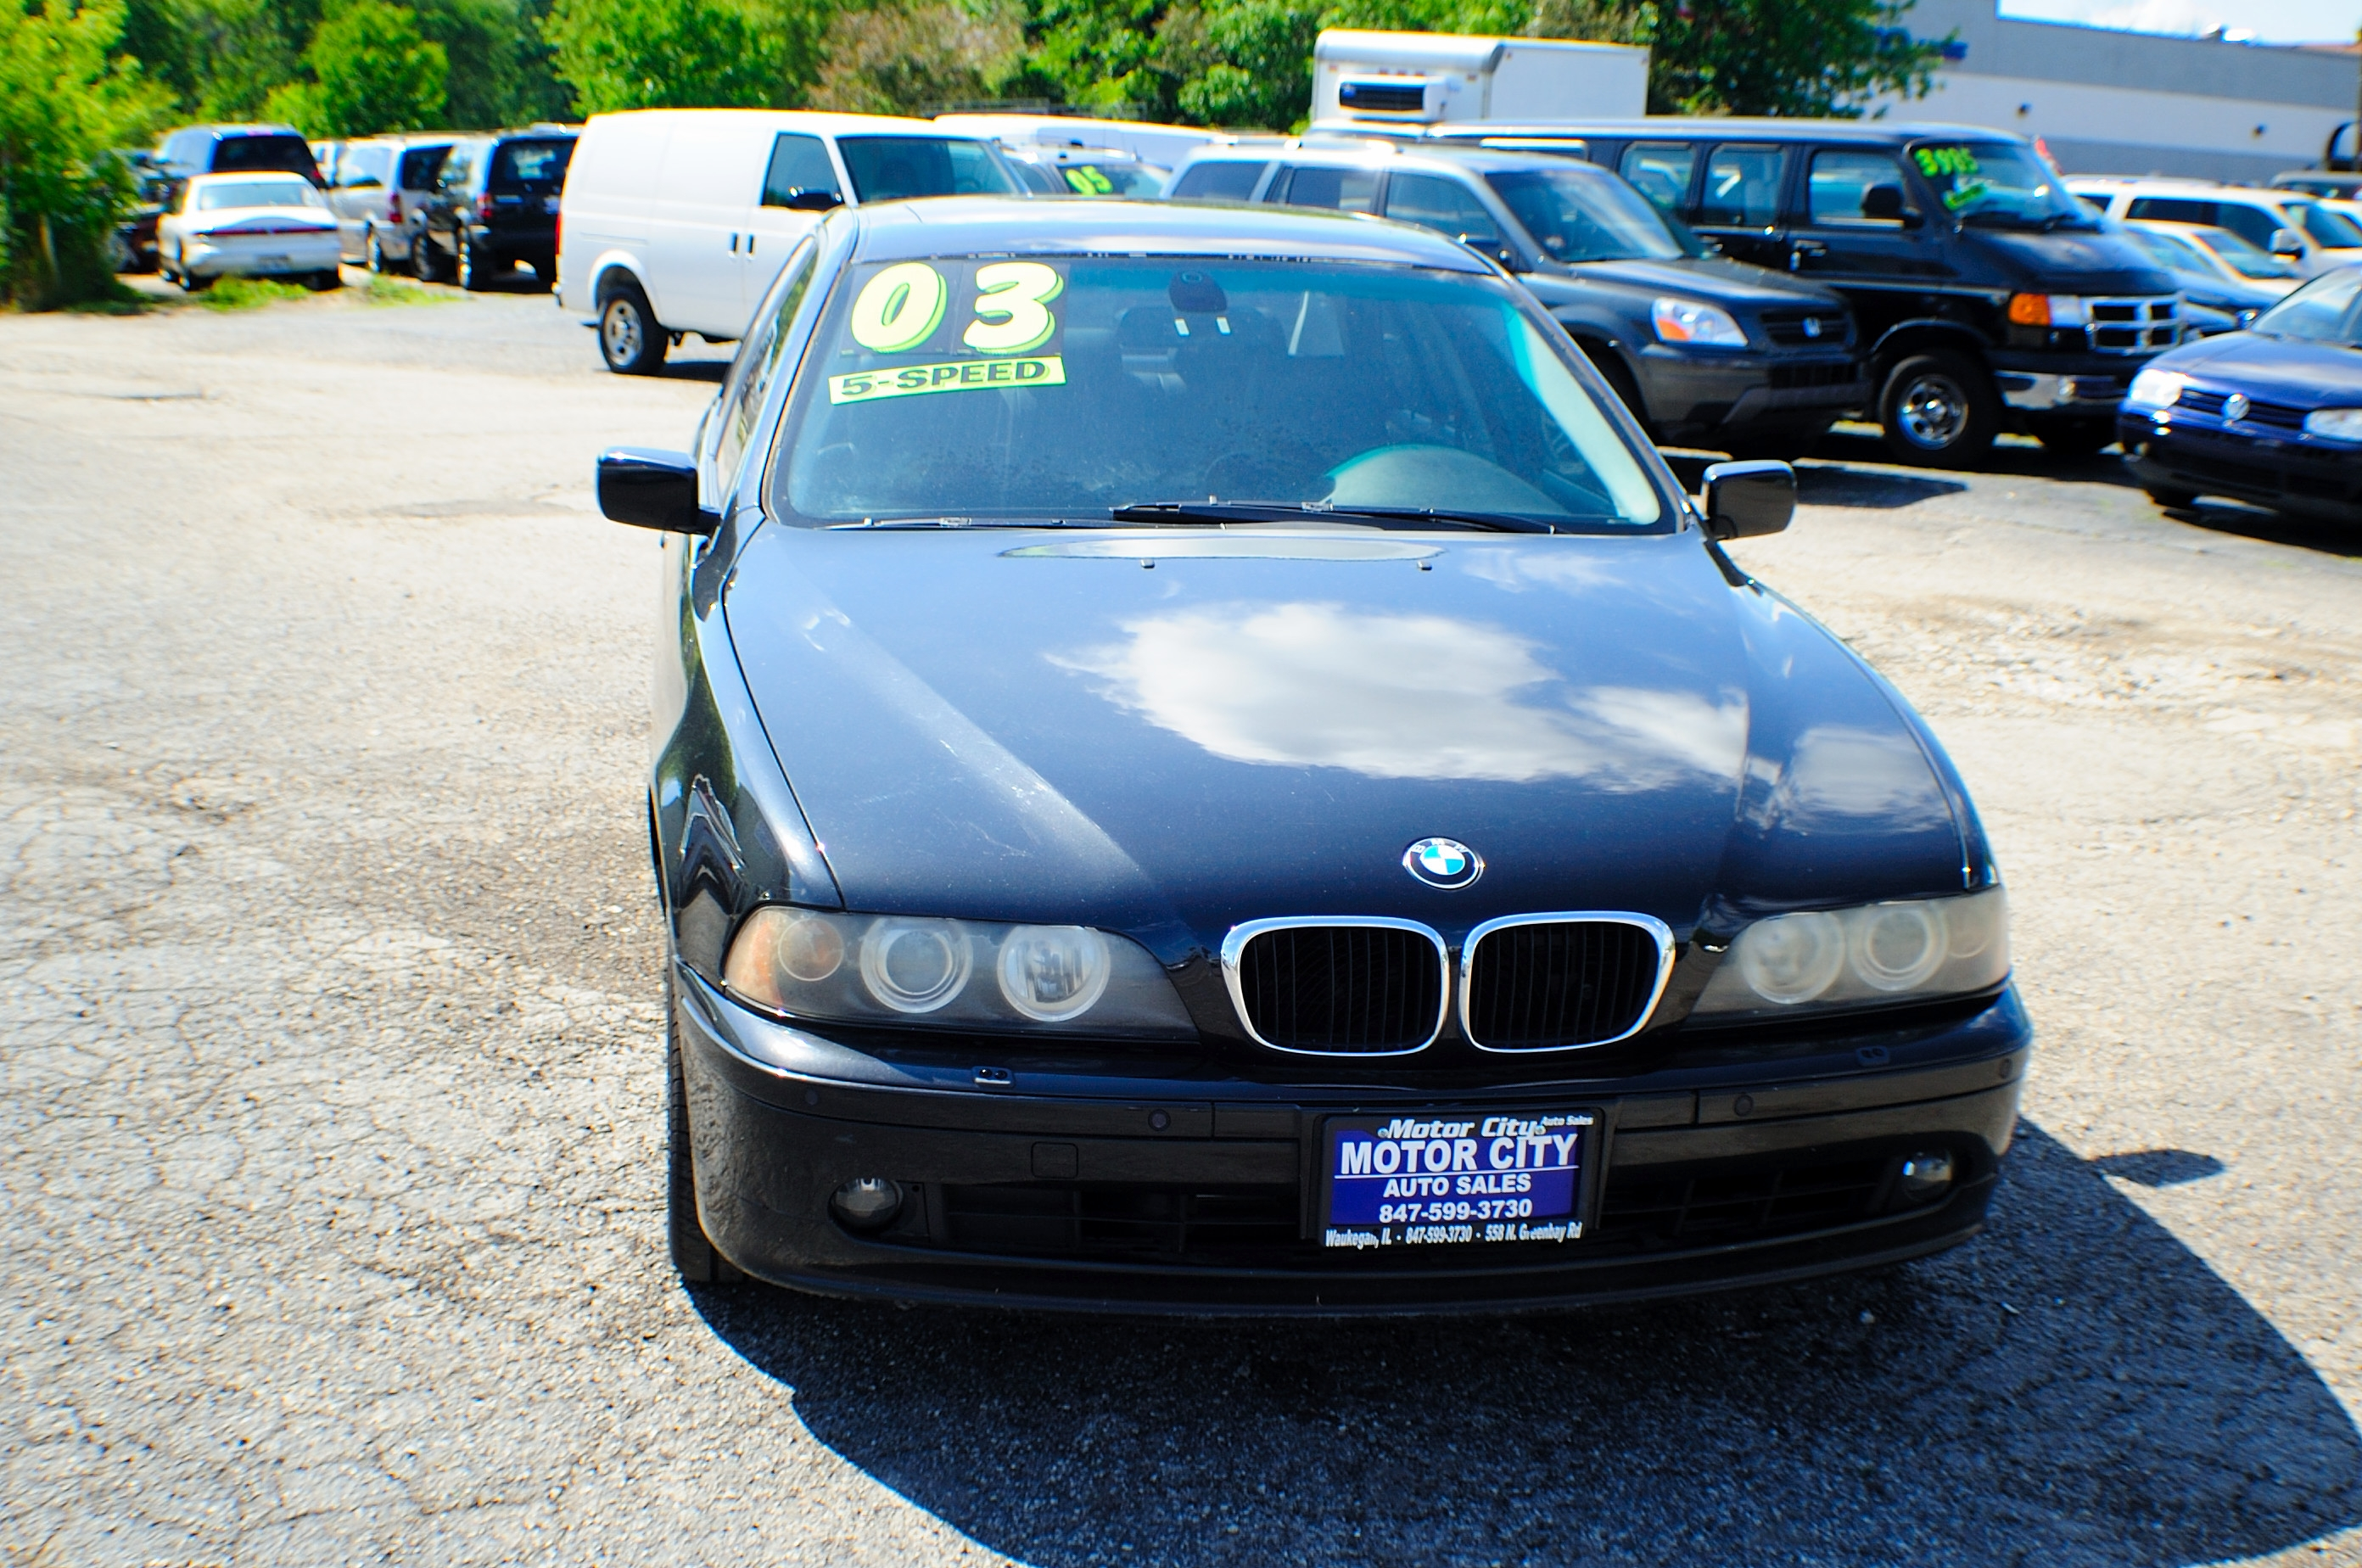 2003 BMW 530i 5 Series Black M5 Manual Sedan Used Car Sale Lindenhurst Gurnee